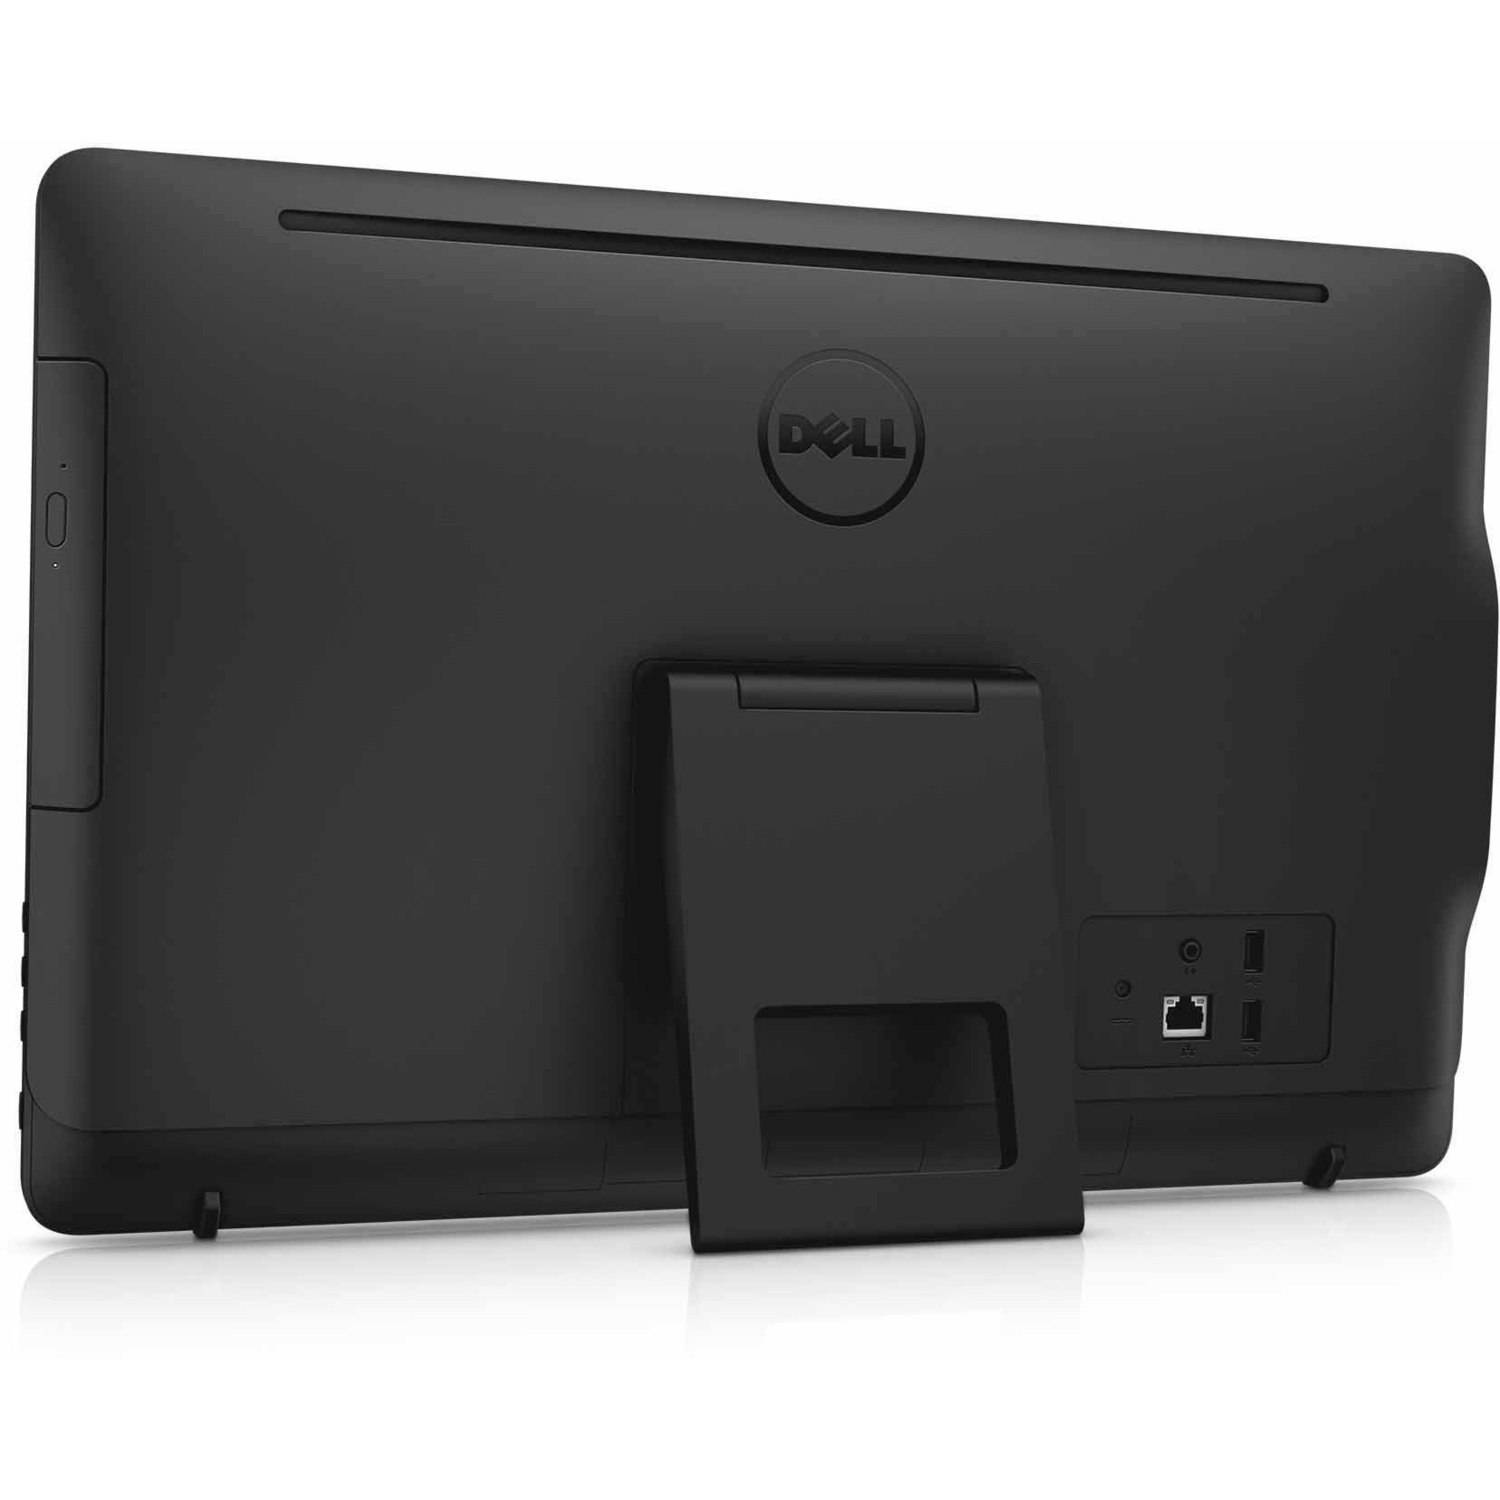 Dell black inspiron 3052 all in one desktop pc with intel celeron dell black inspiron 3052 all in one desktop pc with intel celeron n3150 processor 2gb memory 195 monitor 32gb emmc and windows 10 home walmart buycottarizona